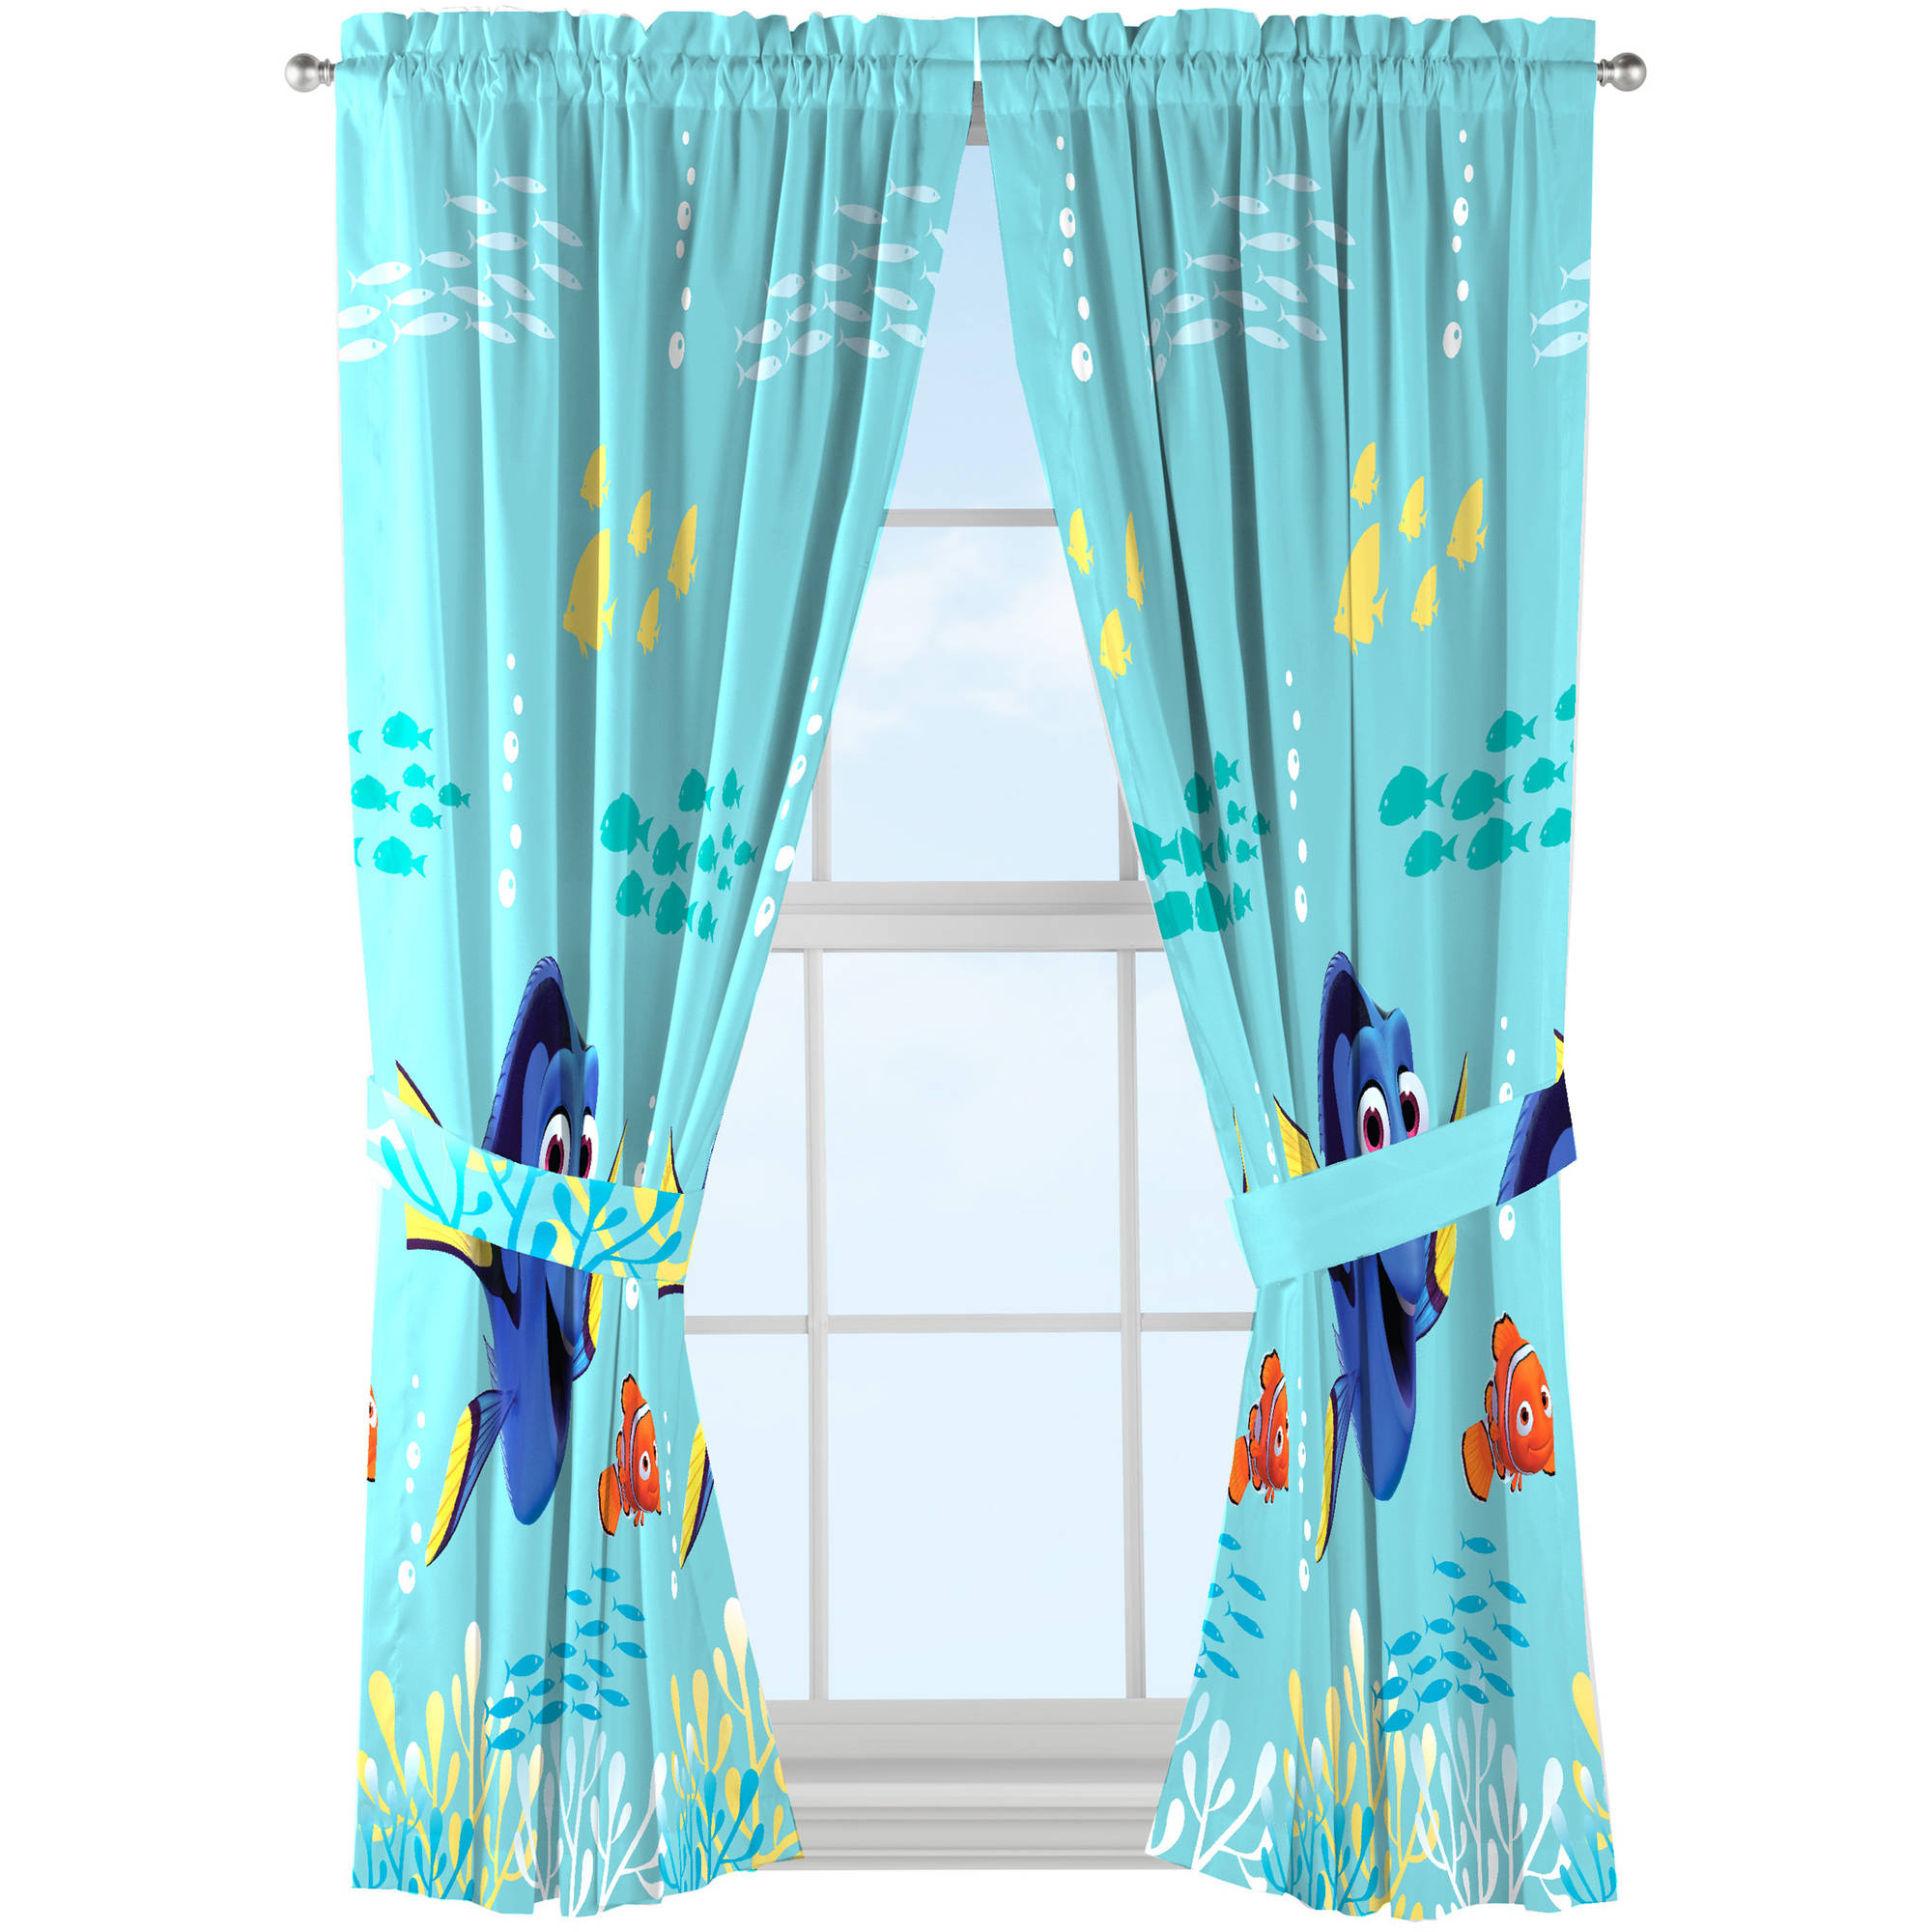 Disney Finding Dory Drapes, Set of 2